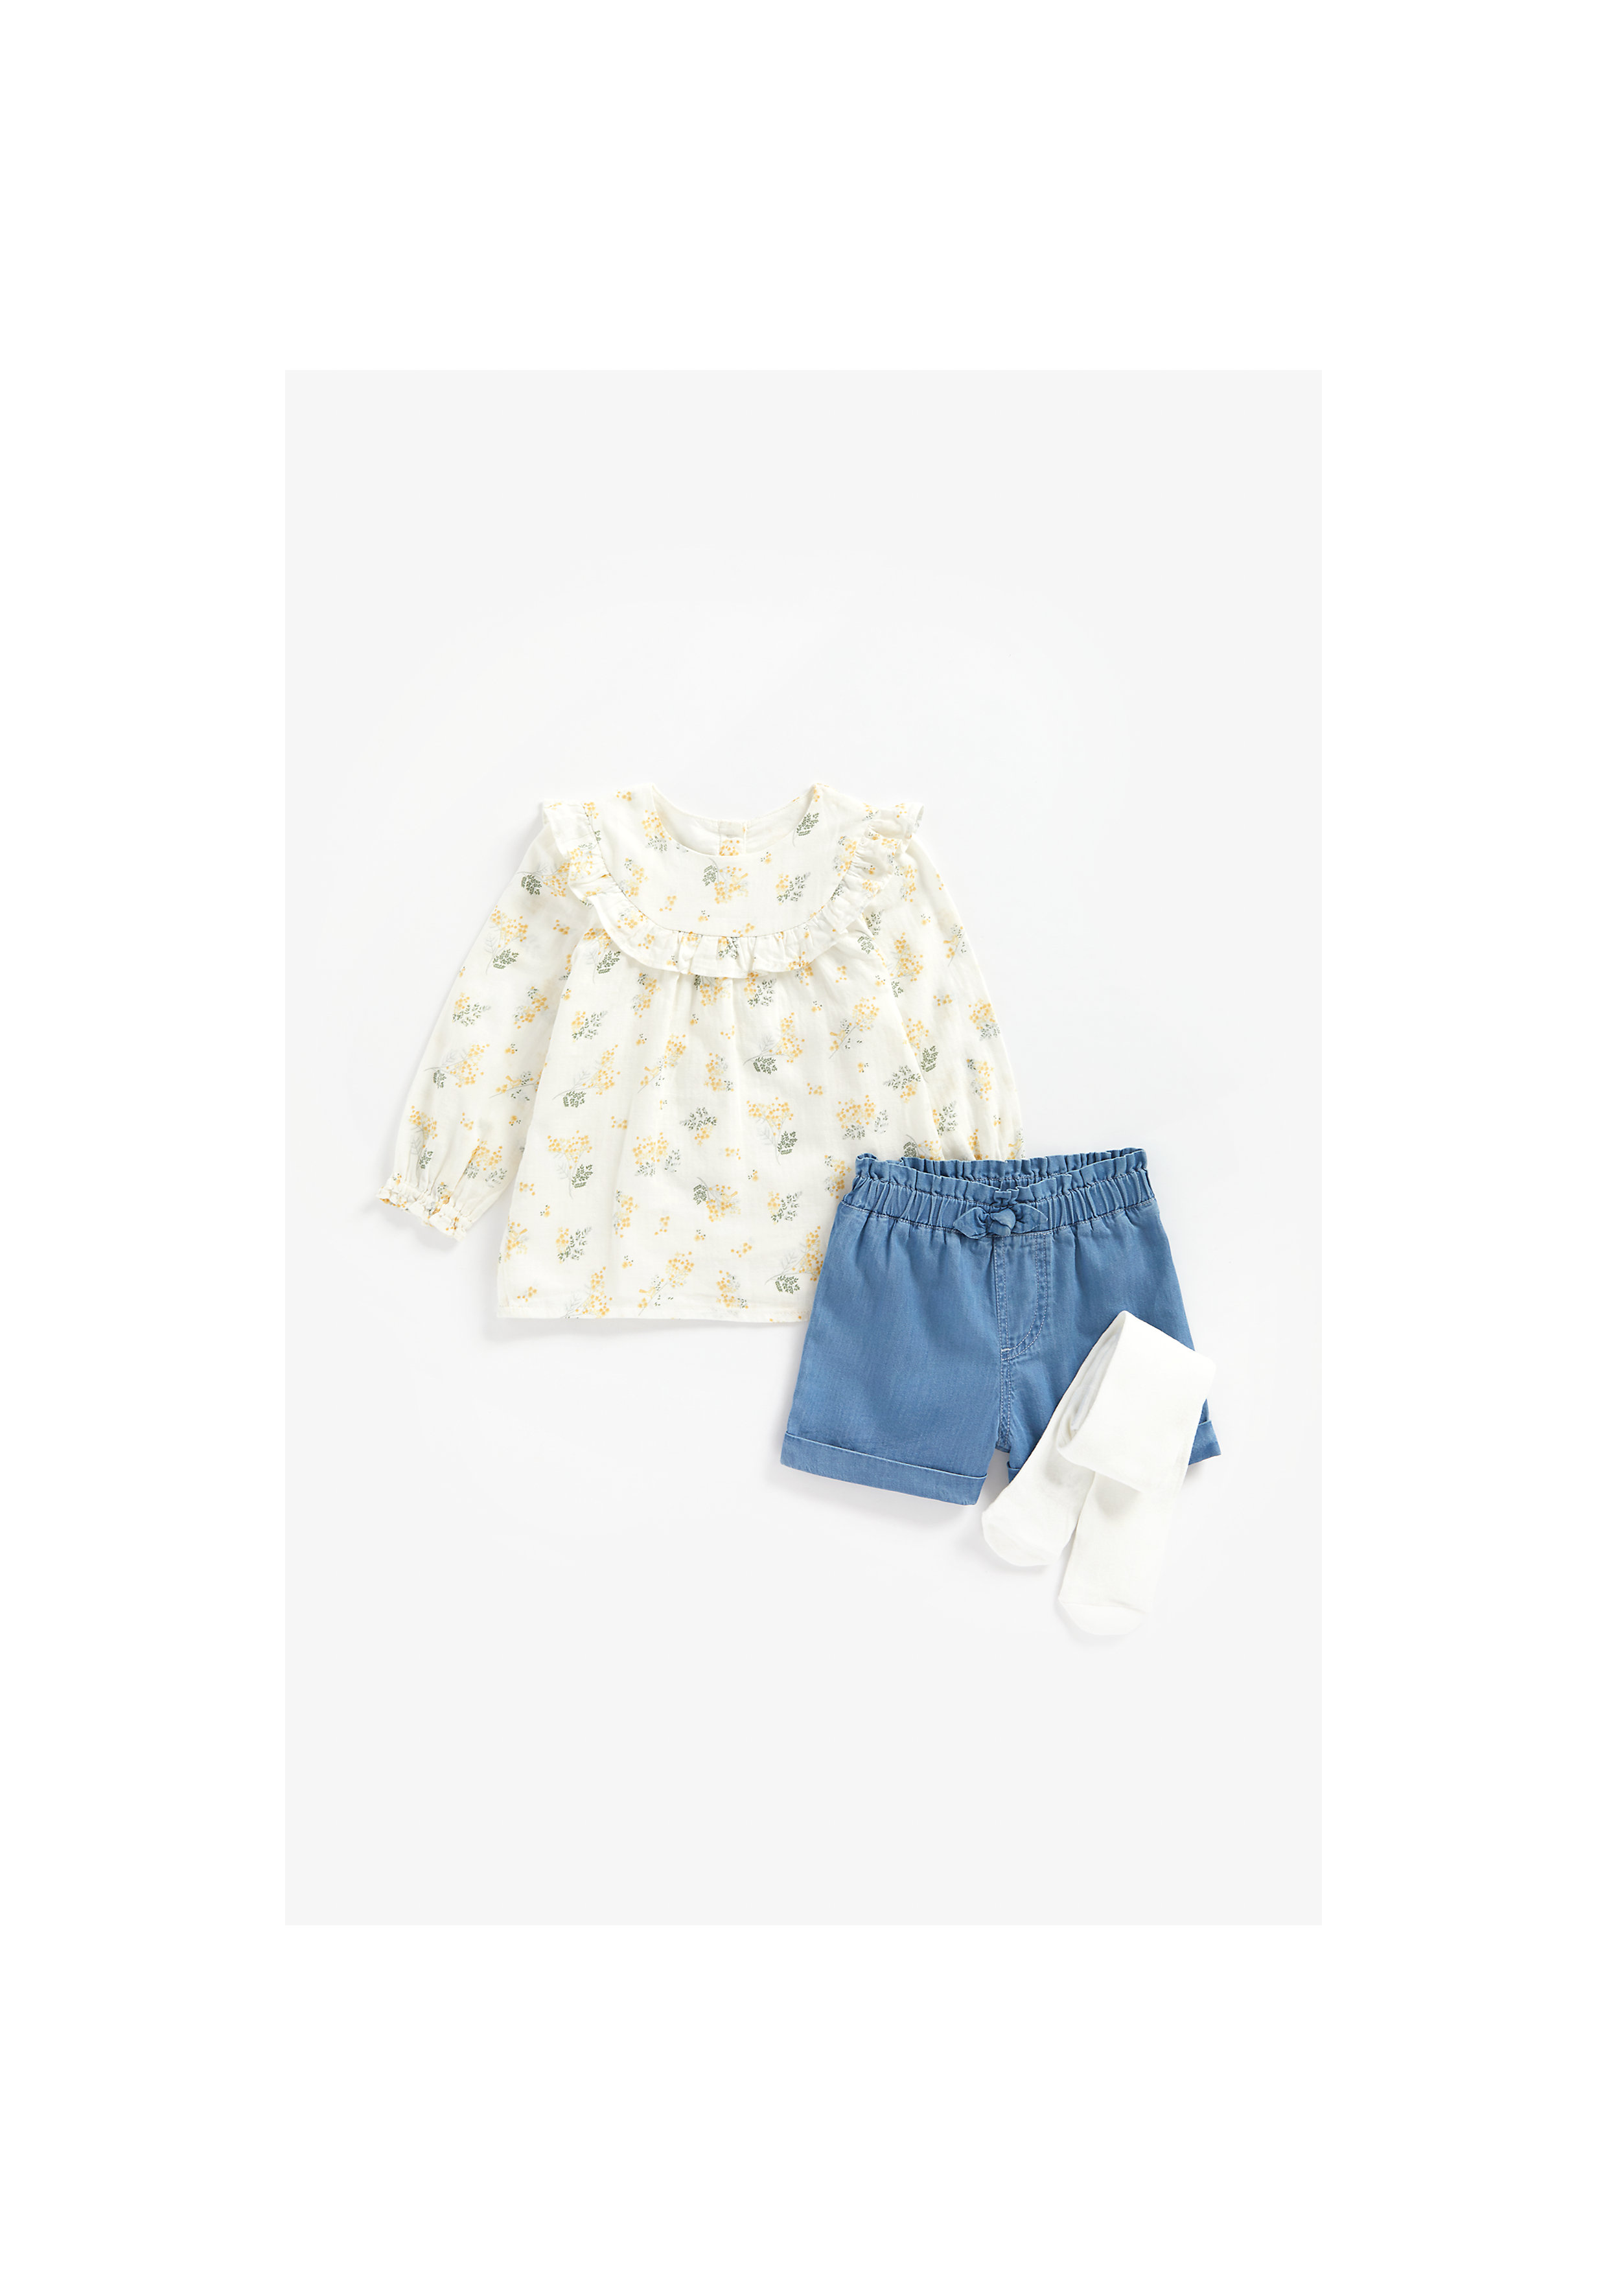 Mothercare | Girls Full Sleeves Top, Shorts And Tights Set Frill Detail - Multicolor